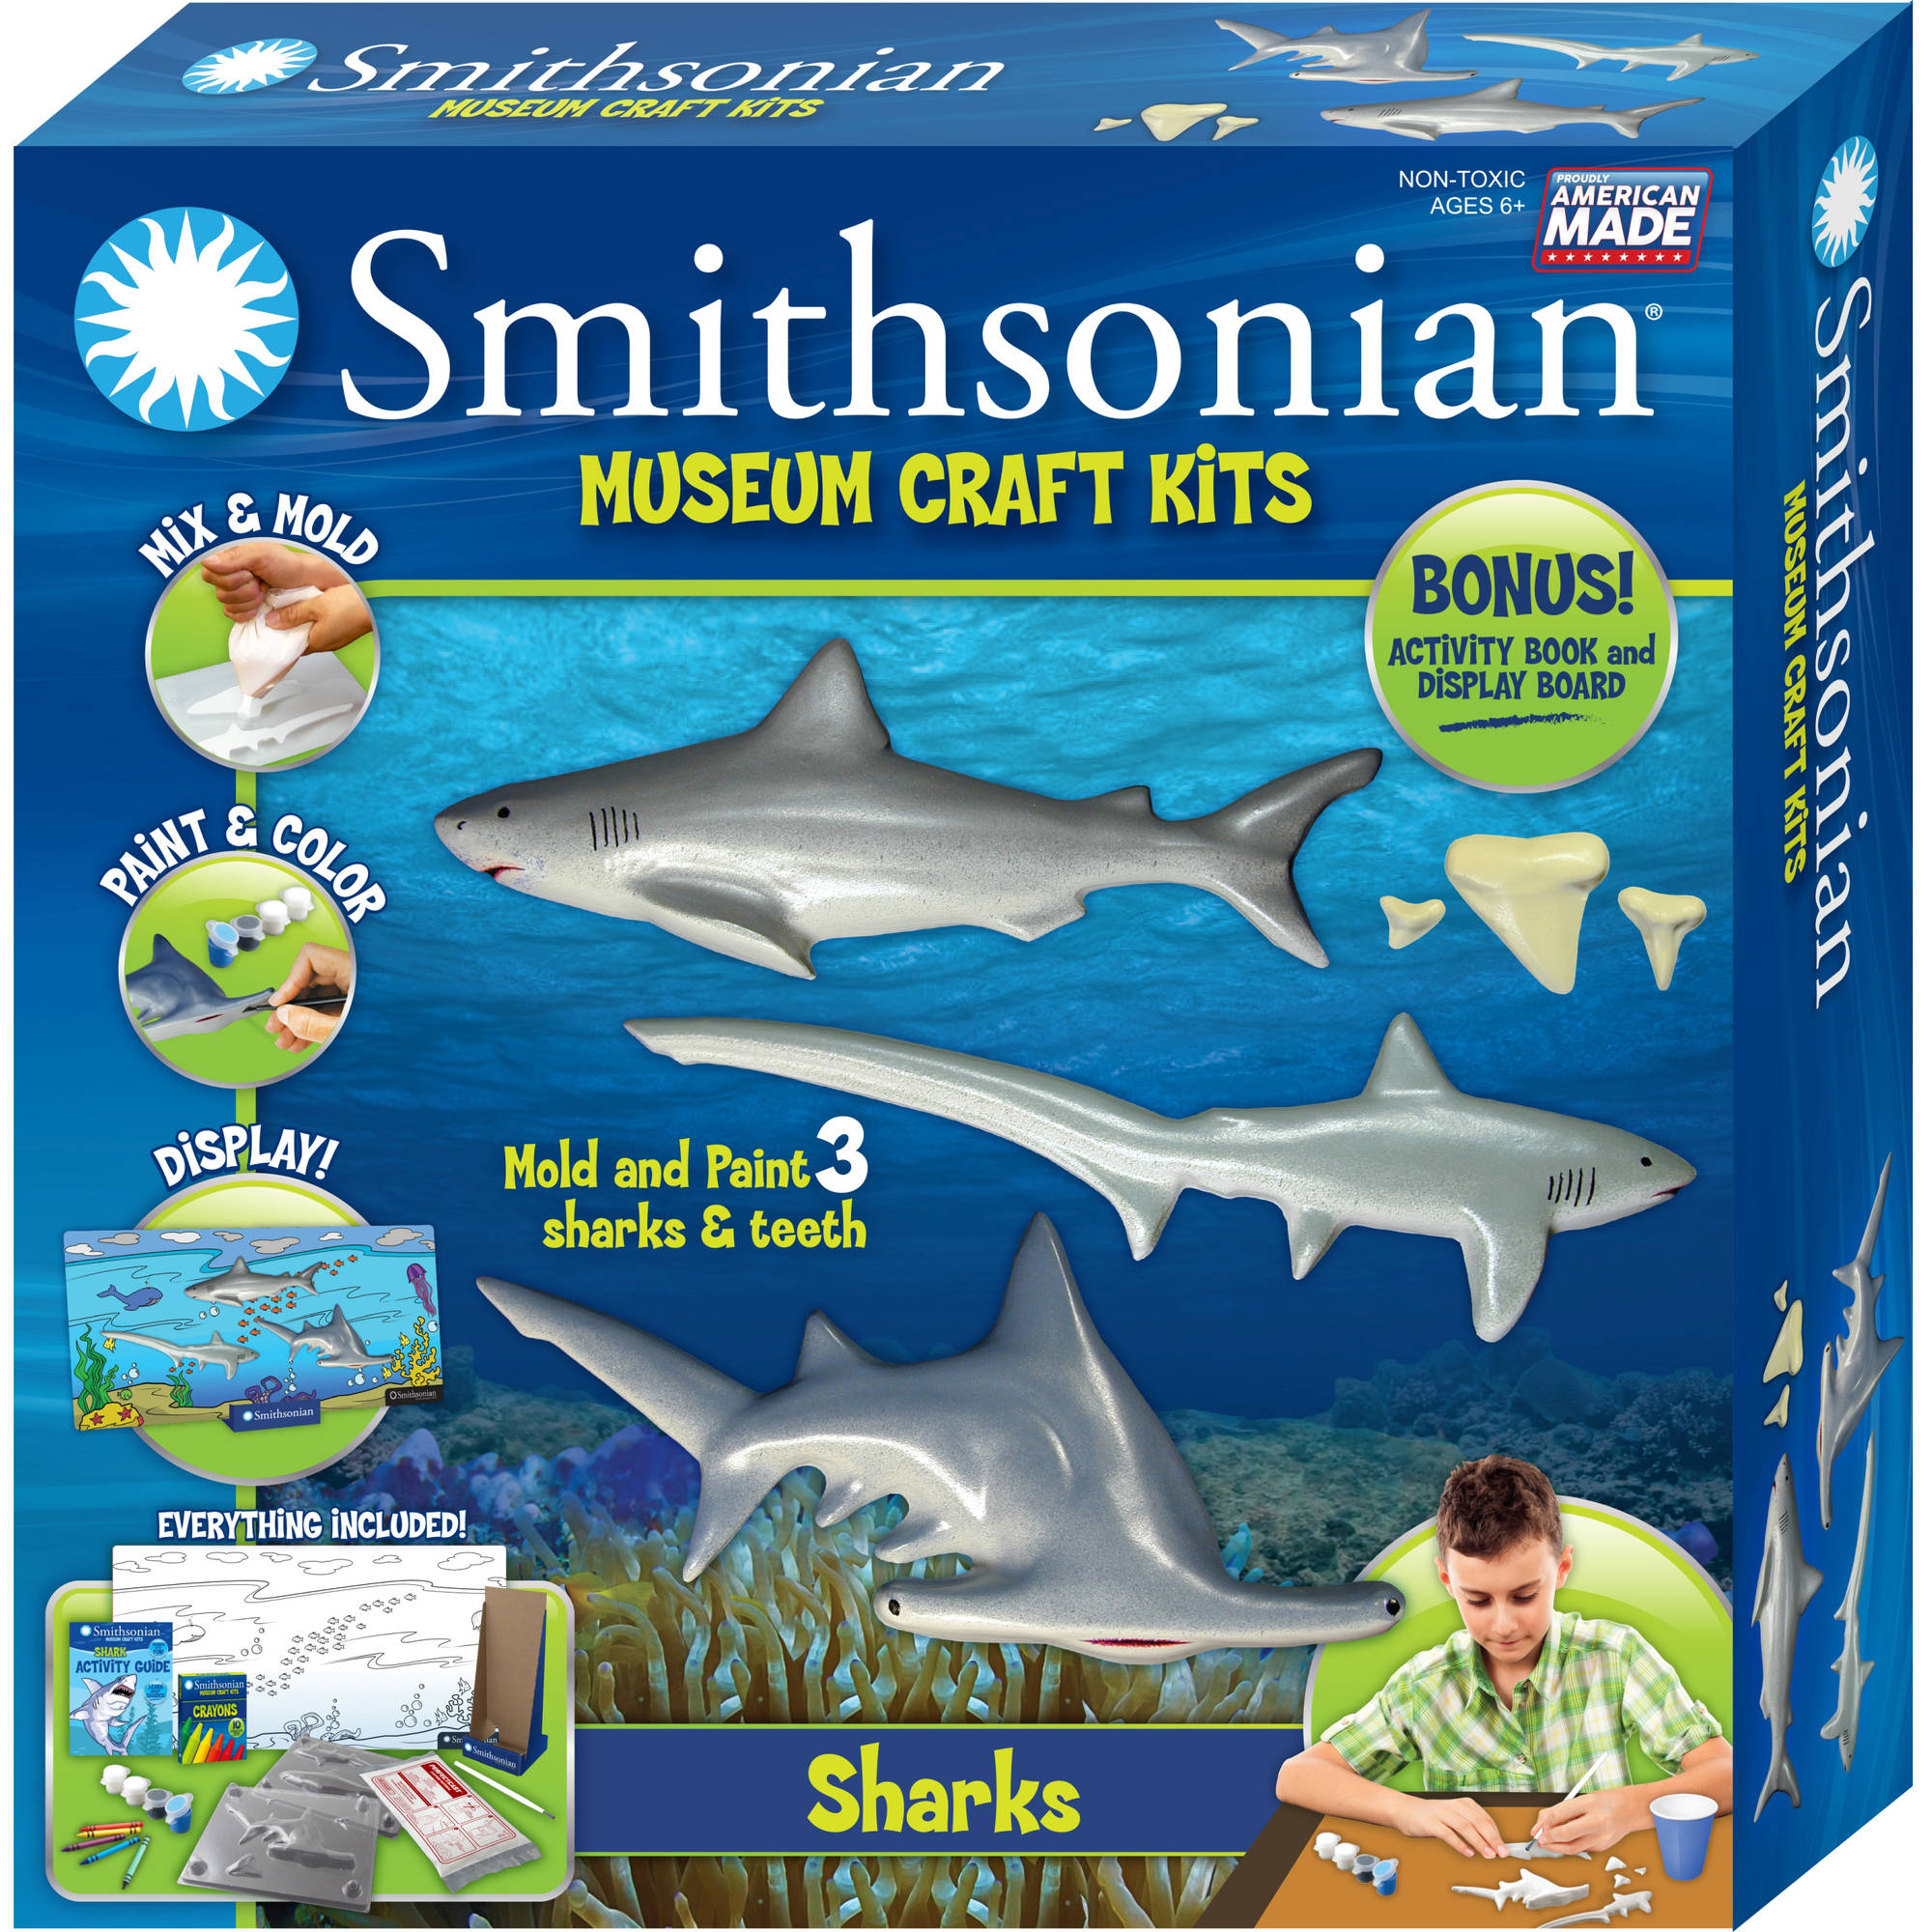 Smithsonian Museum Craft Kits, Shark